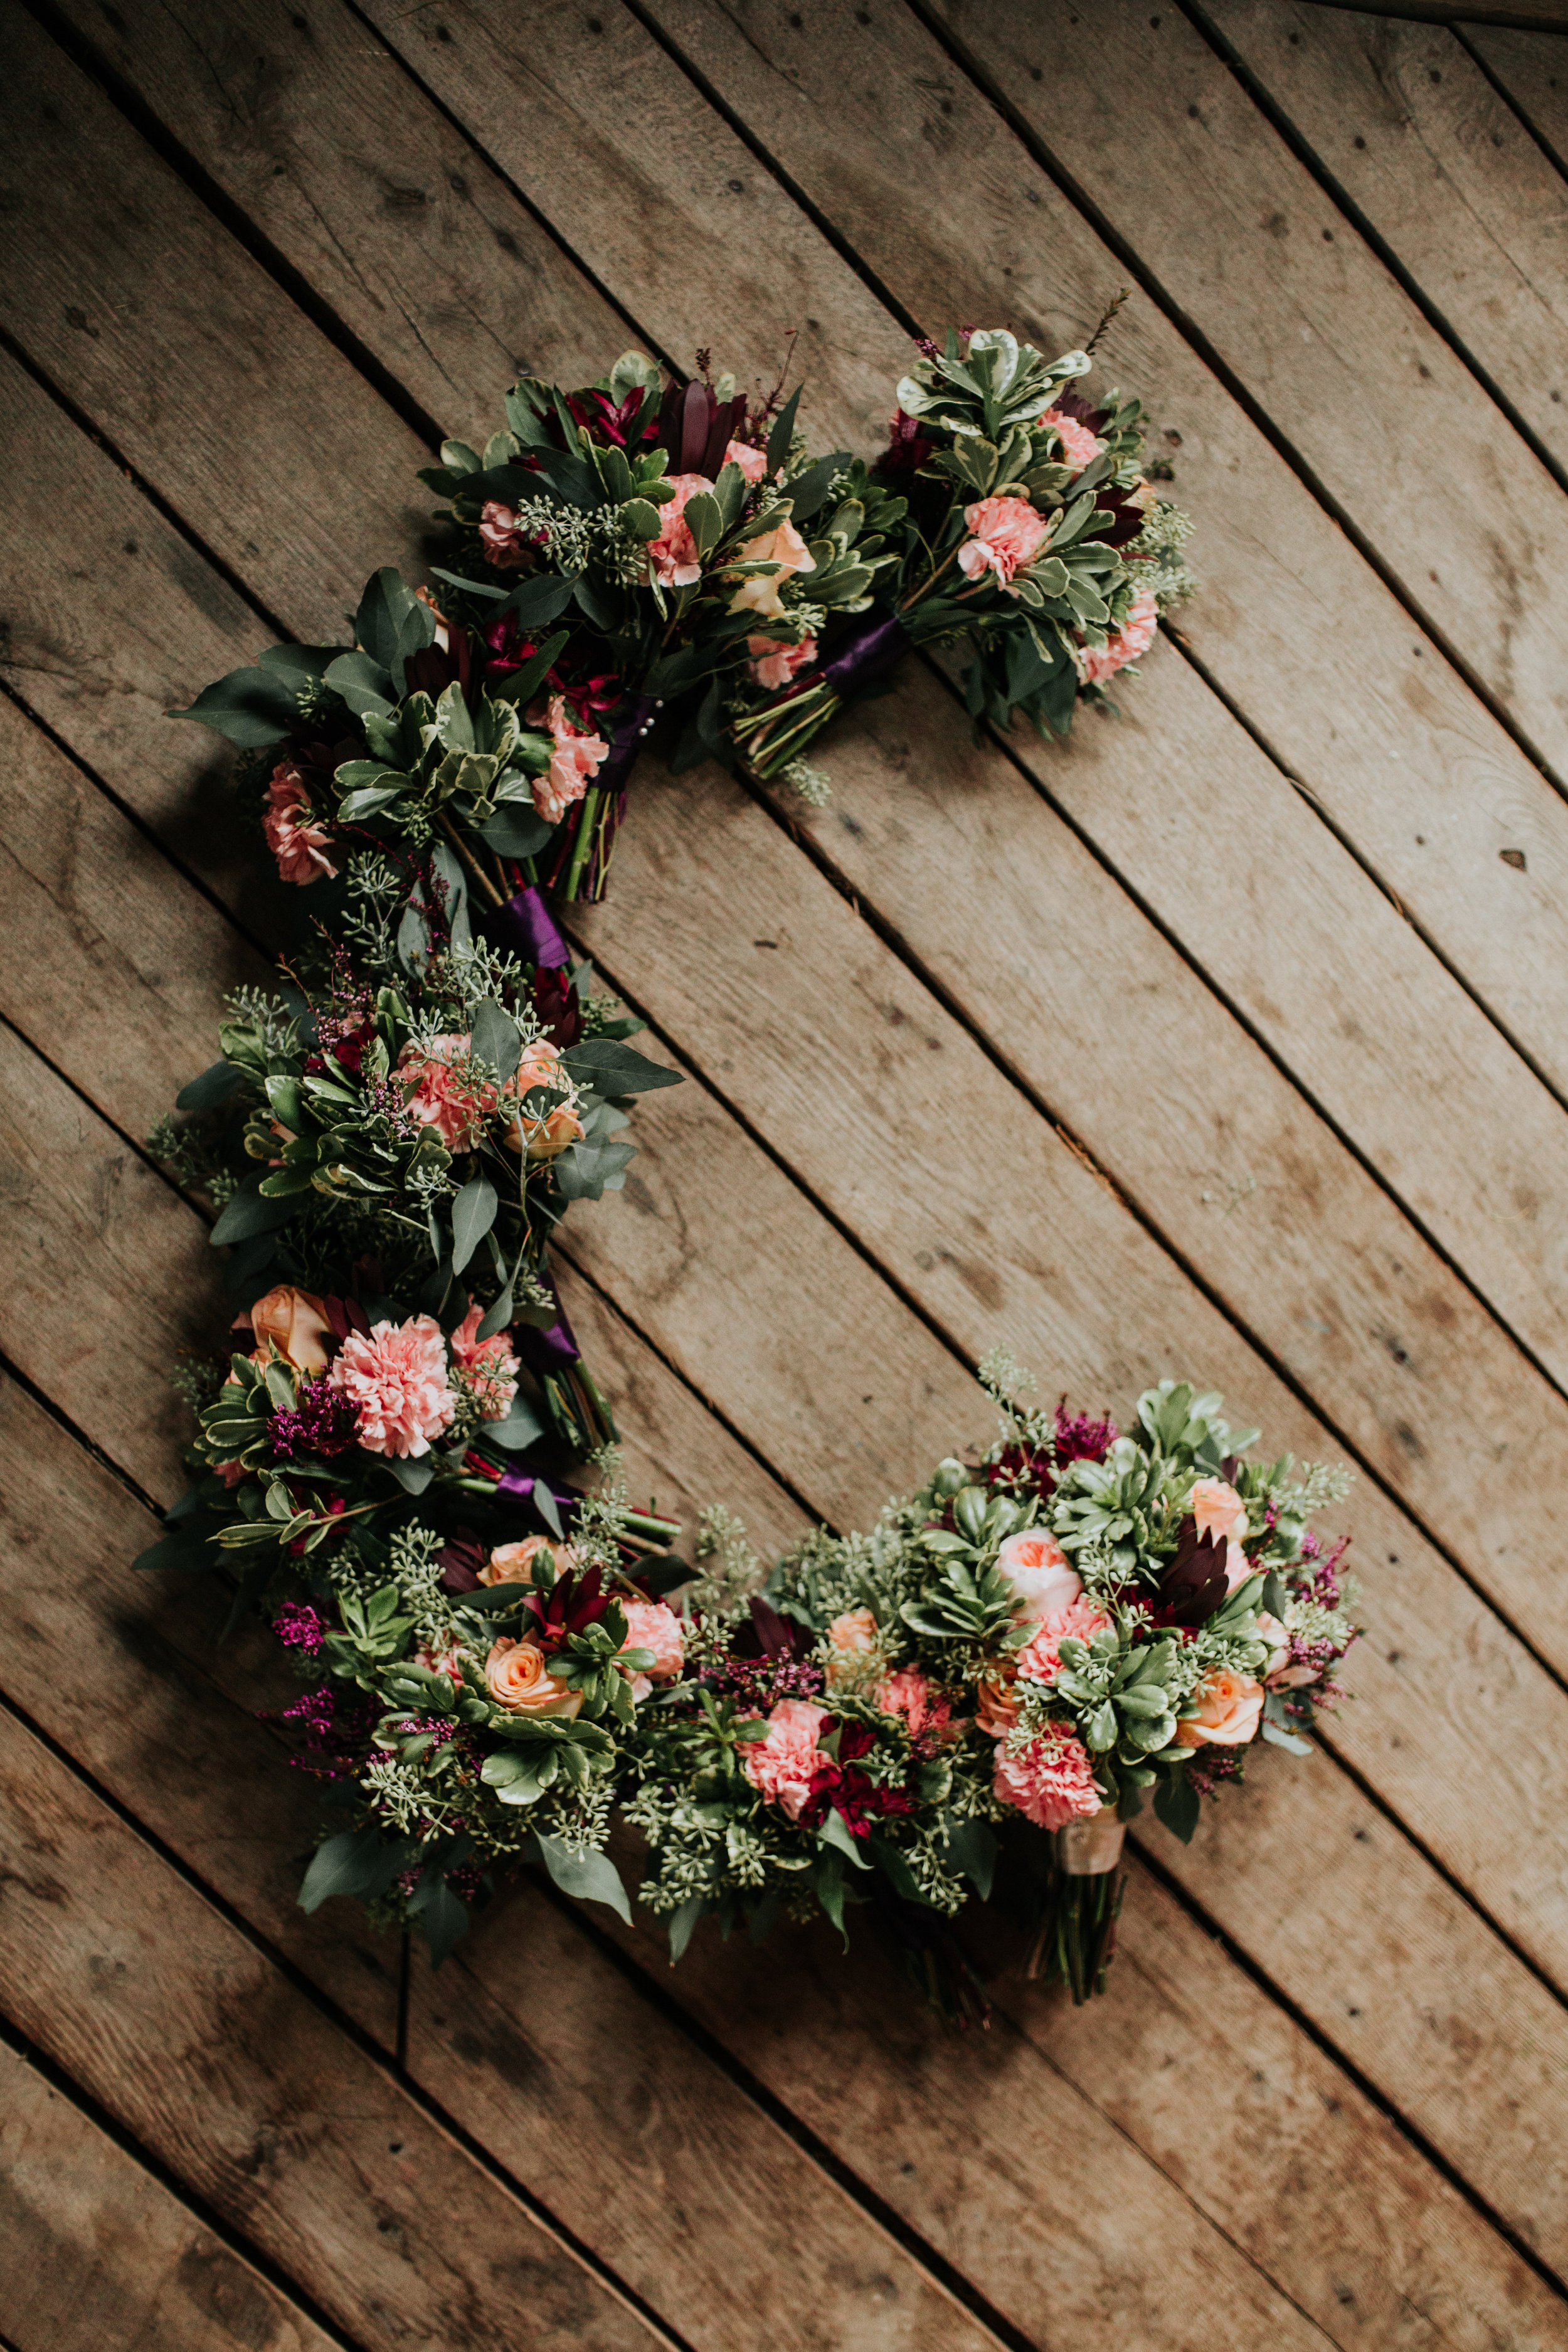 All of these beautiful images were taken by the sweetest photographers, a Grand Rapids couple named Jamie &Sarah. You can find more of their work and their website  here <3